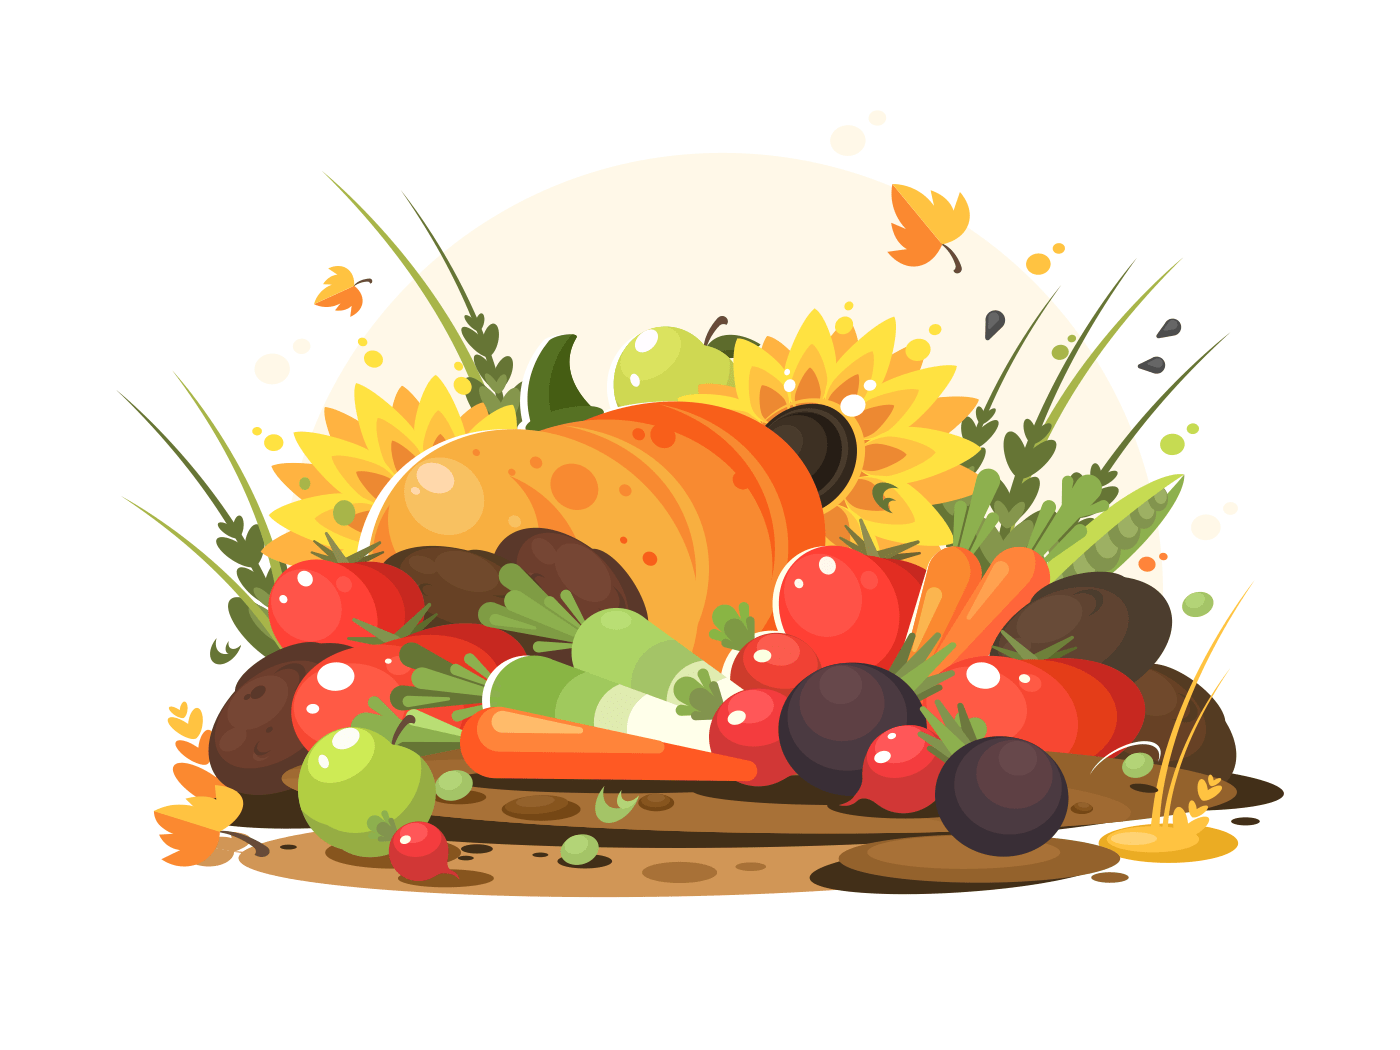 Autumn harvest of vegetables and fruits. Pumpkin and tomatoes, apples and carrots. Vector illustration